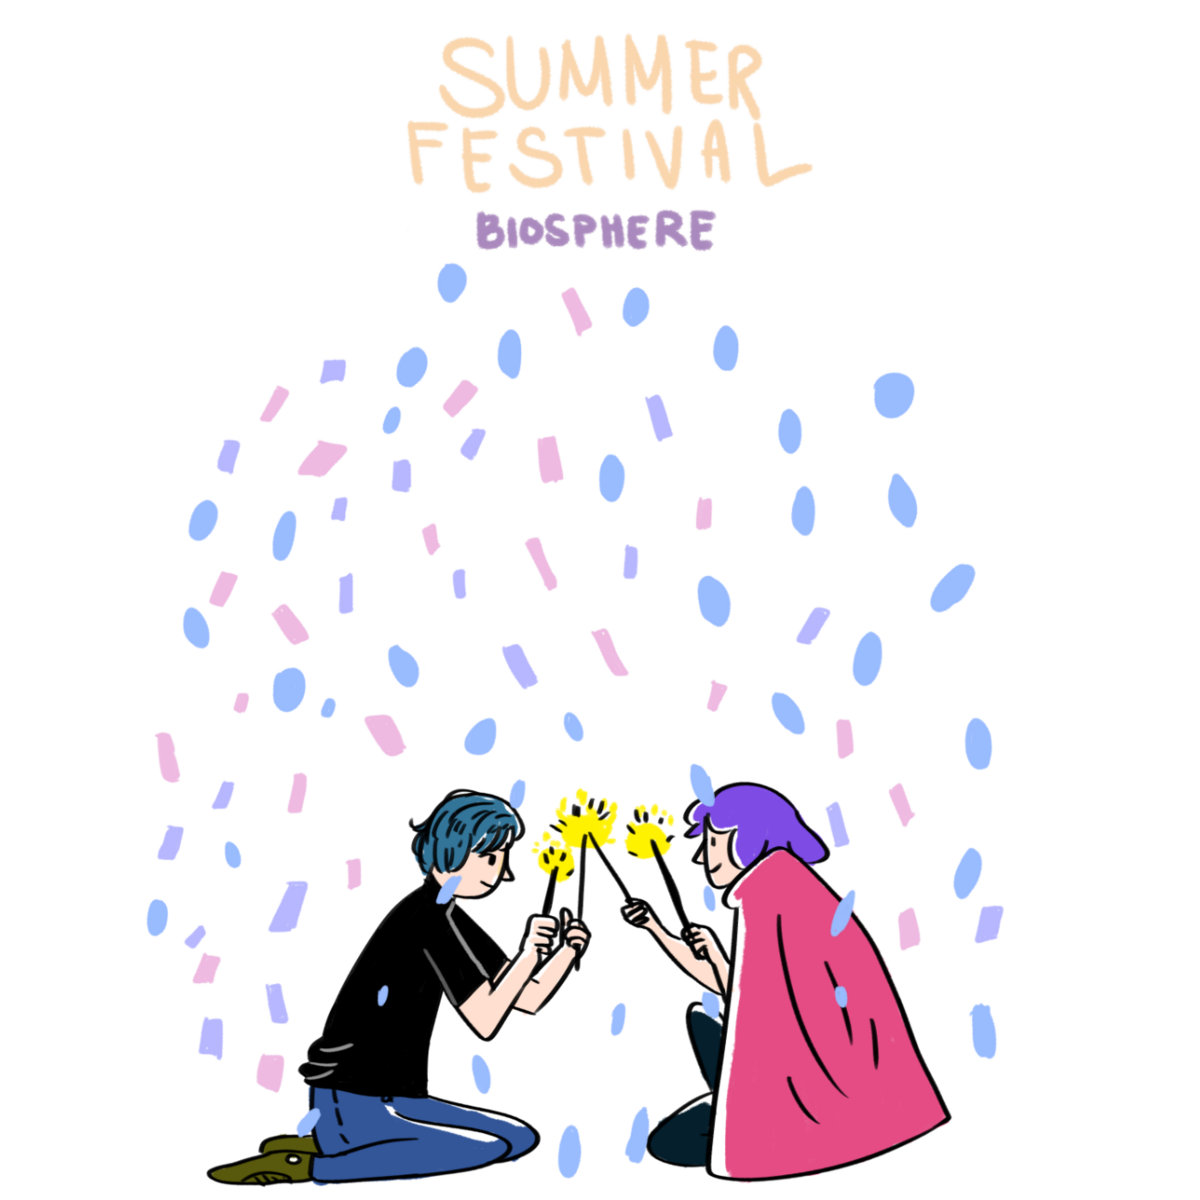 From Summer Festival [Full Beattape] By Biosphere